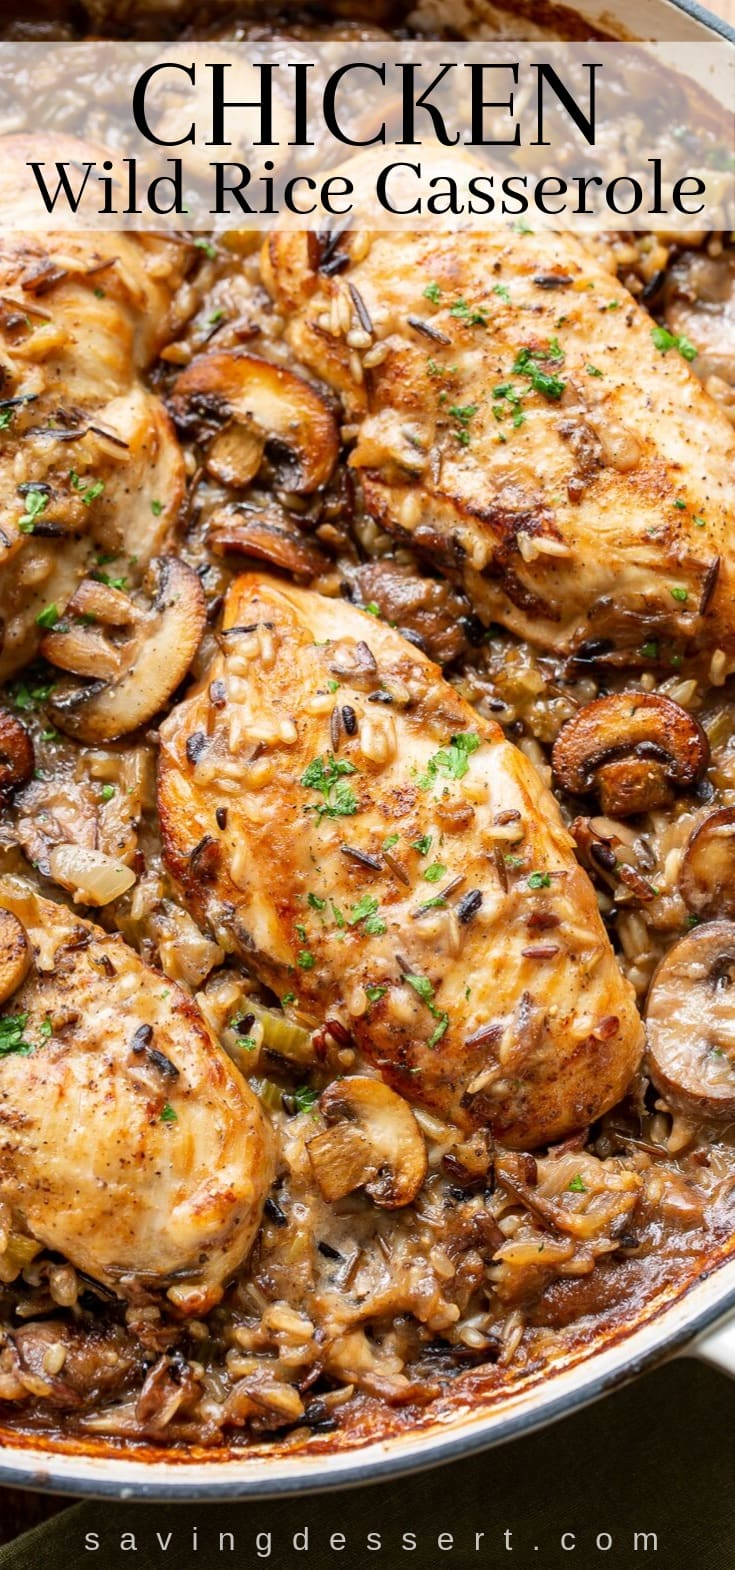 A skillet with chicken and mushrooms in a wild rice casserole